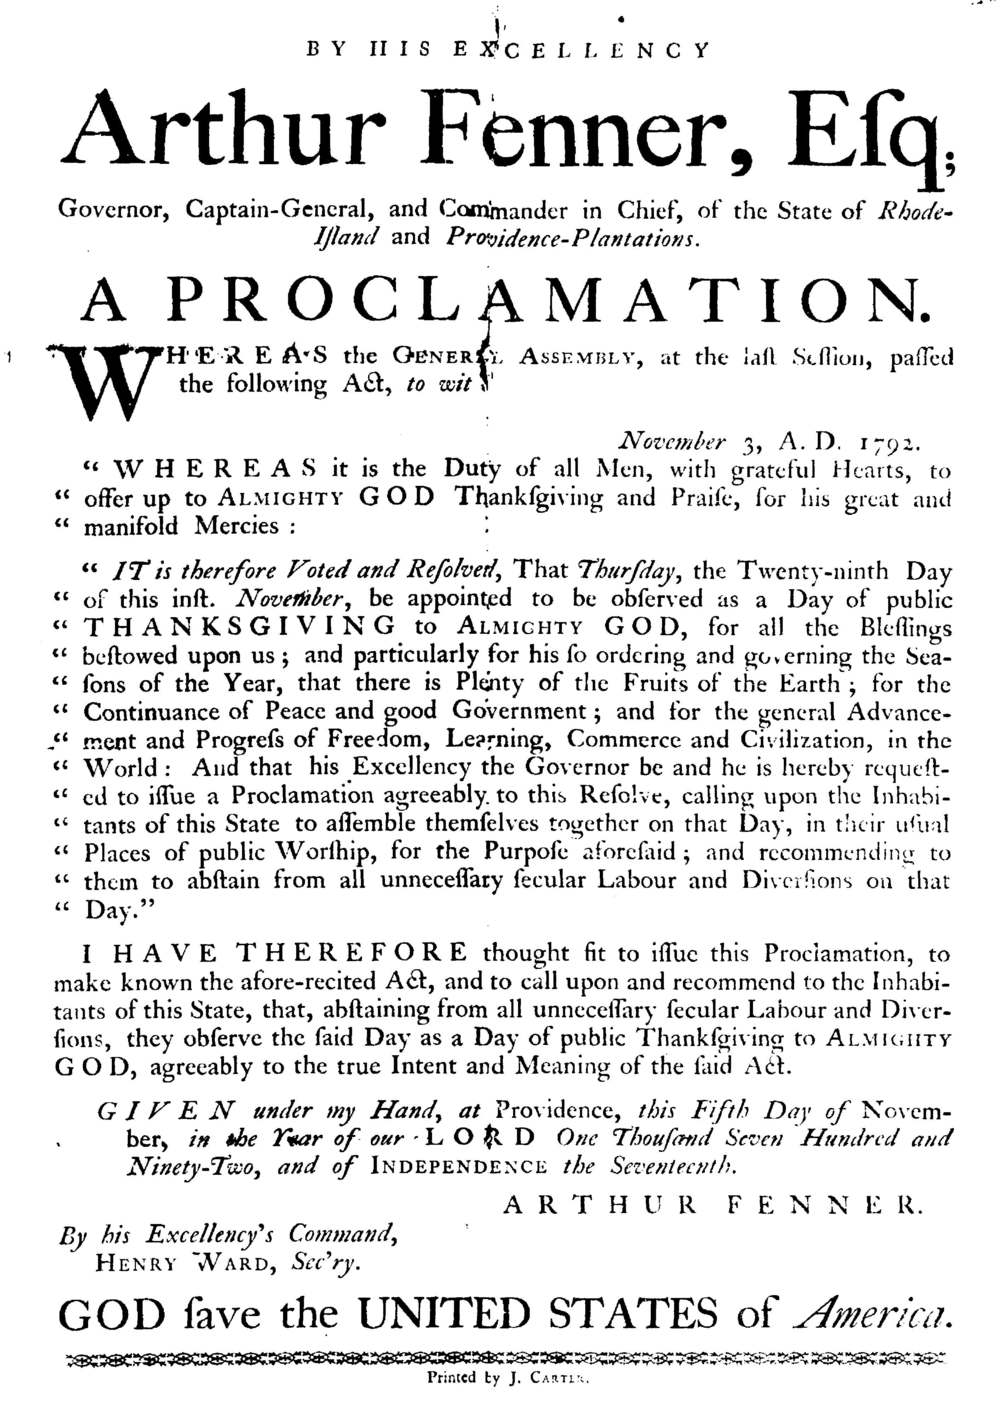 Proclamation for the observance of Thanksgiving, 1792. (www.classicapologetics.com)